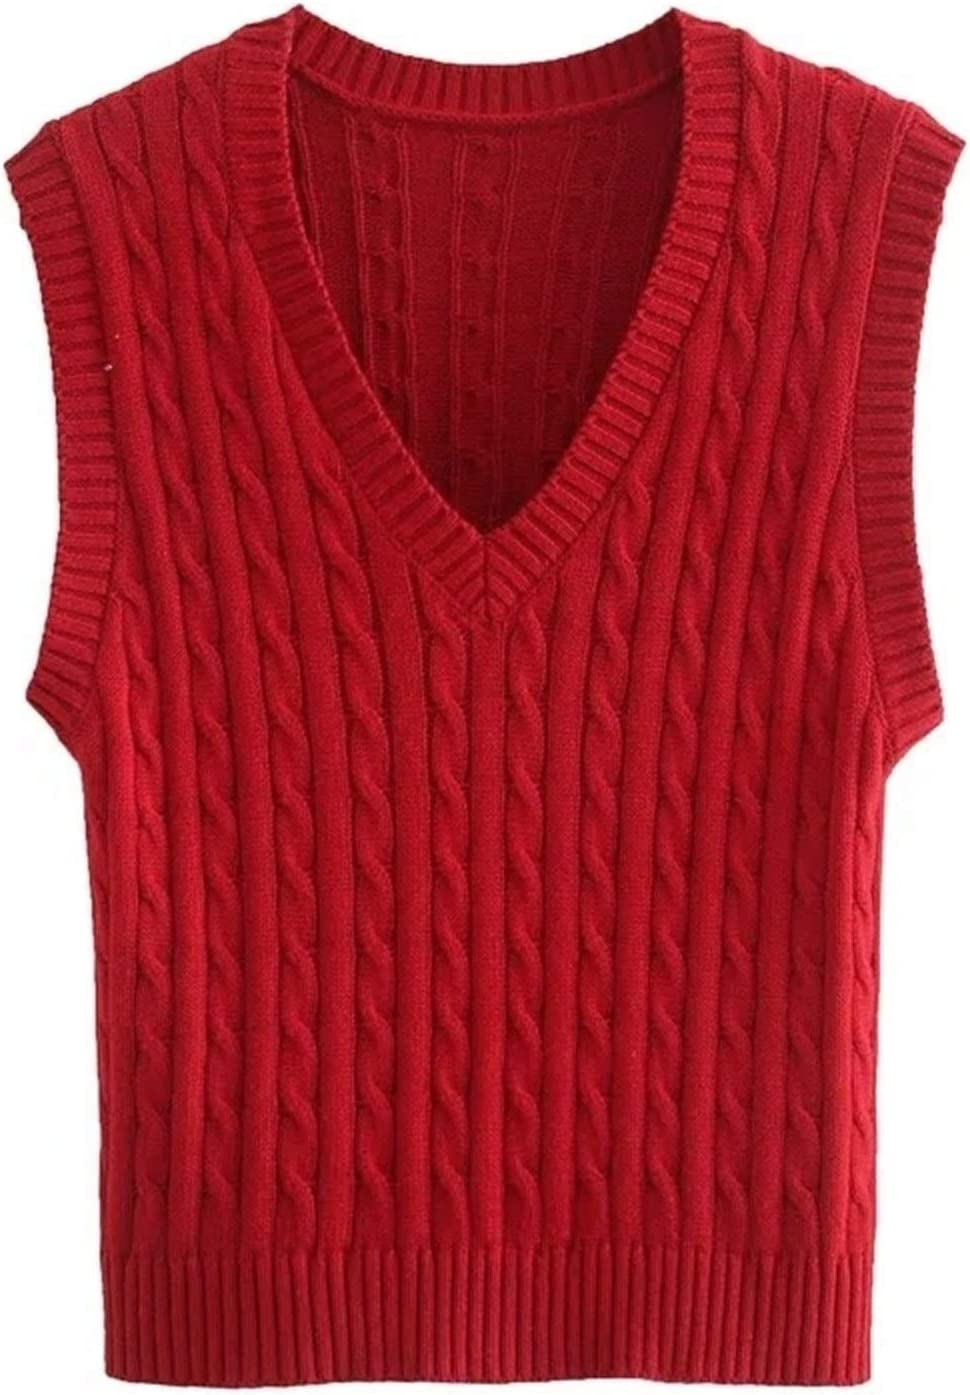 Slim Girls Soft Cotton Vest Sweaters Ladies Knitted Vests Vintage Female Short Sweater Women Chic Sweater Lightweight (Color : Red, Size : S.)